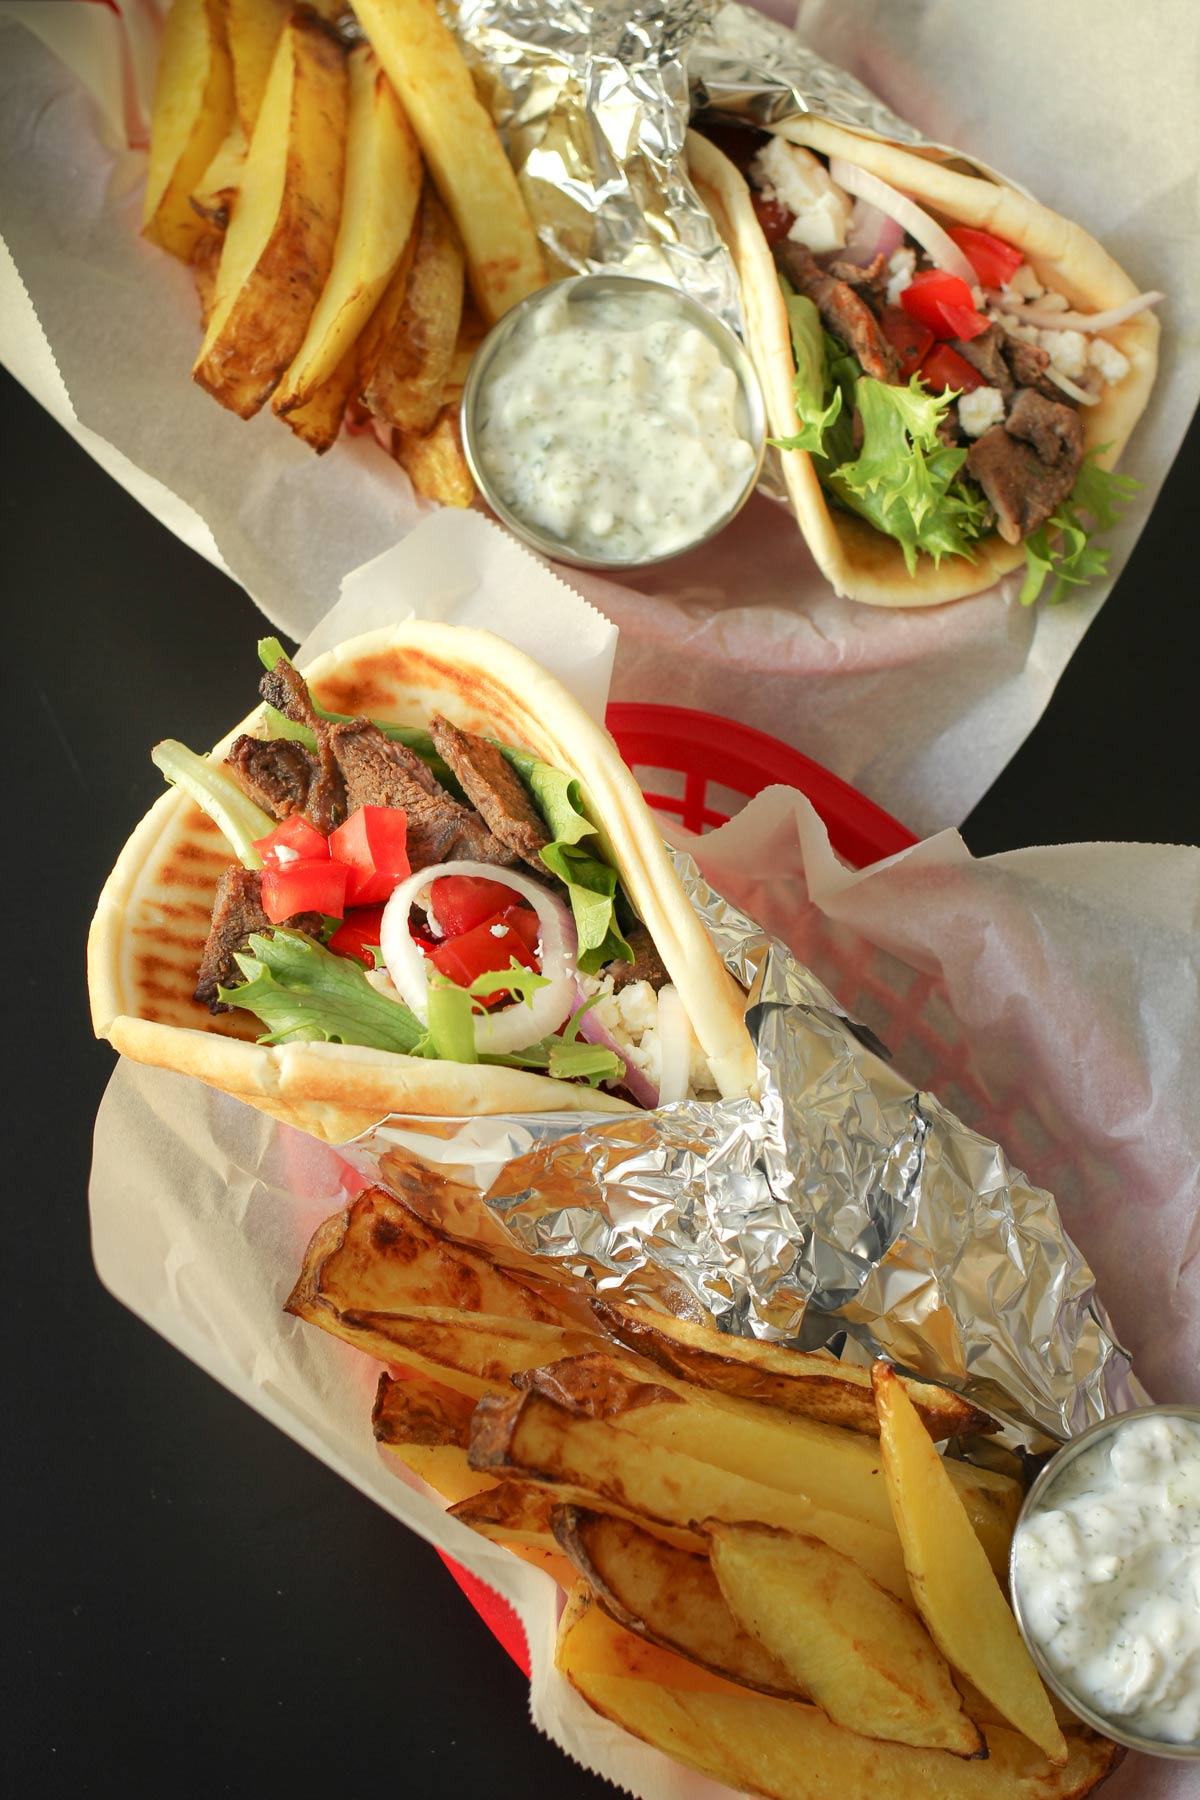 steak pitas in baskets with fries and cups of garlic yogurt sauce.